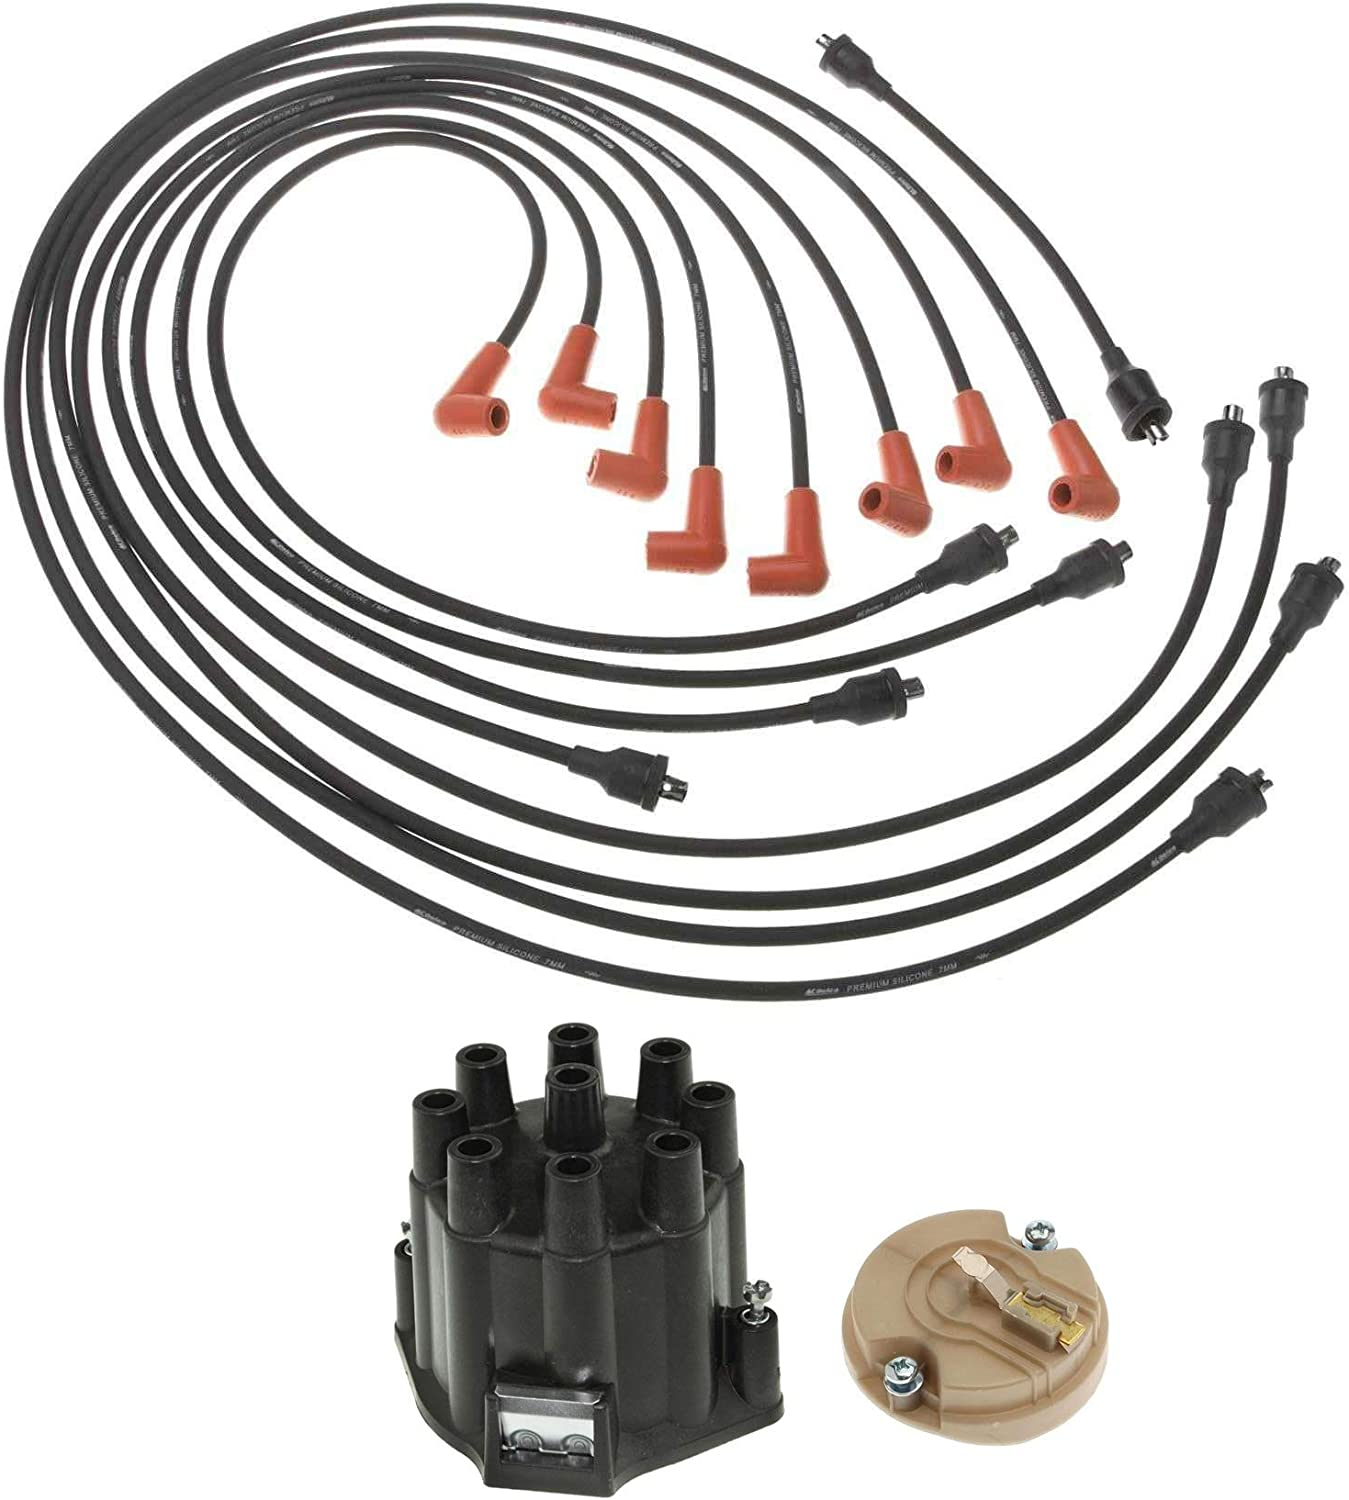 Professional Distributor Rotor Max 47% OFF Cap Wires Biscayne Jimm Kit safety for